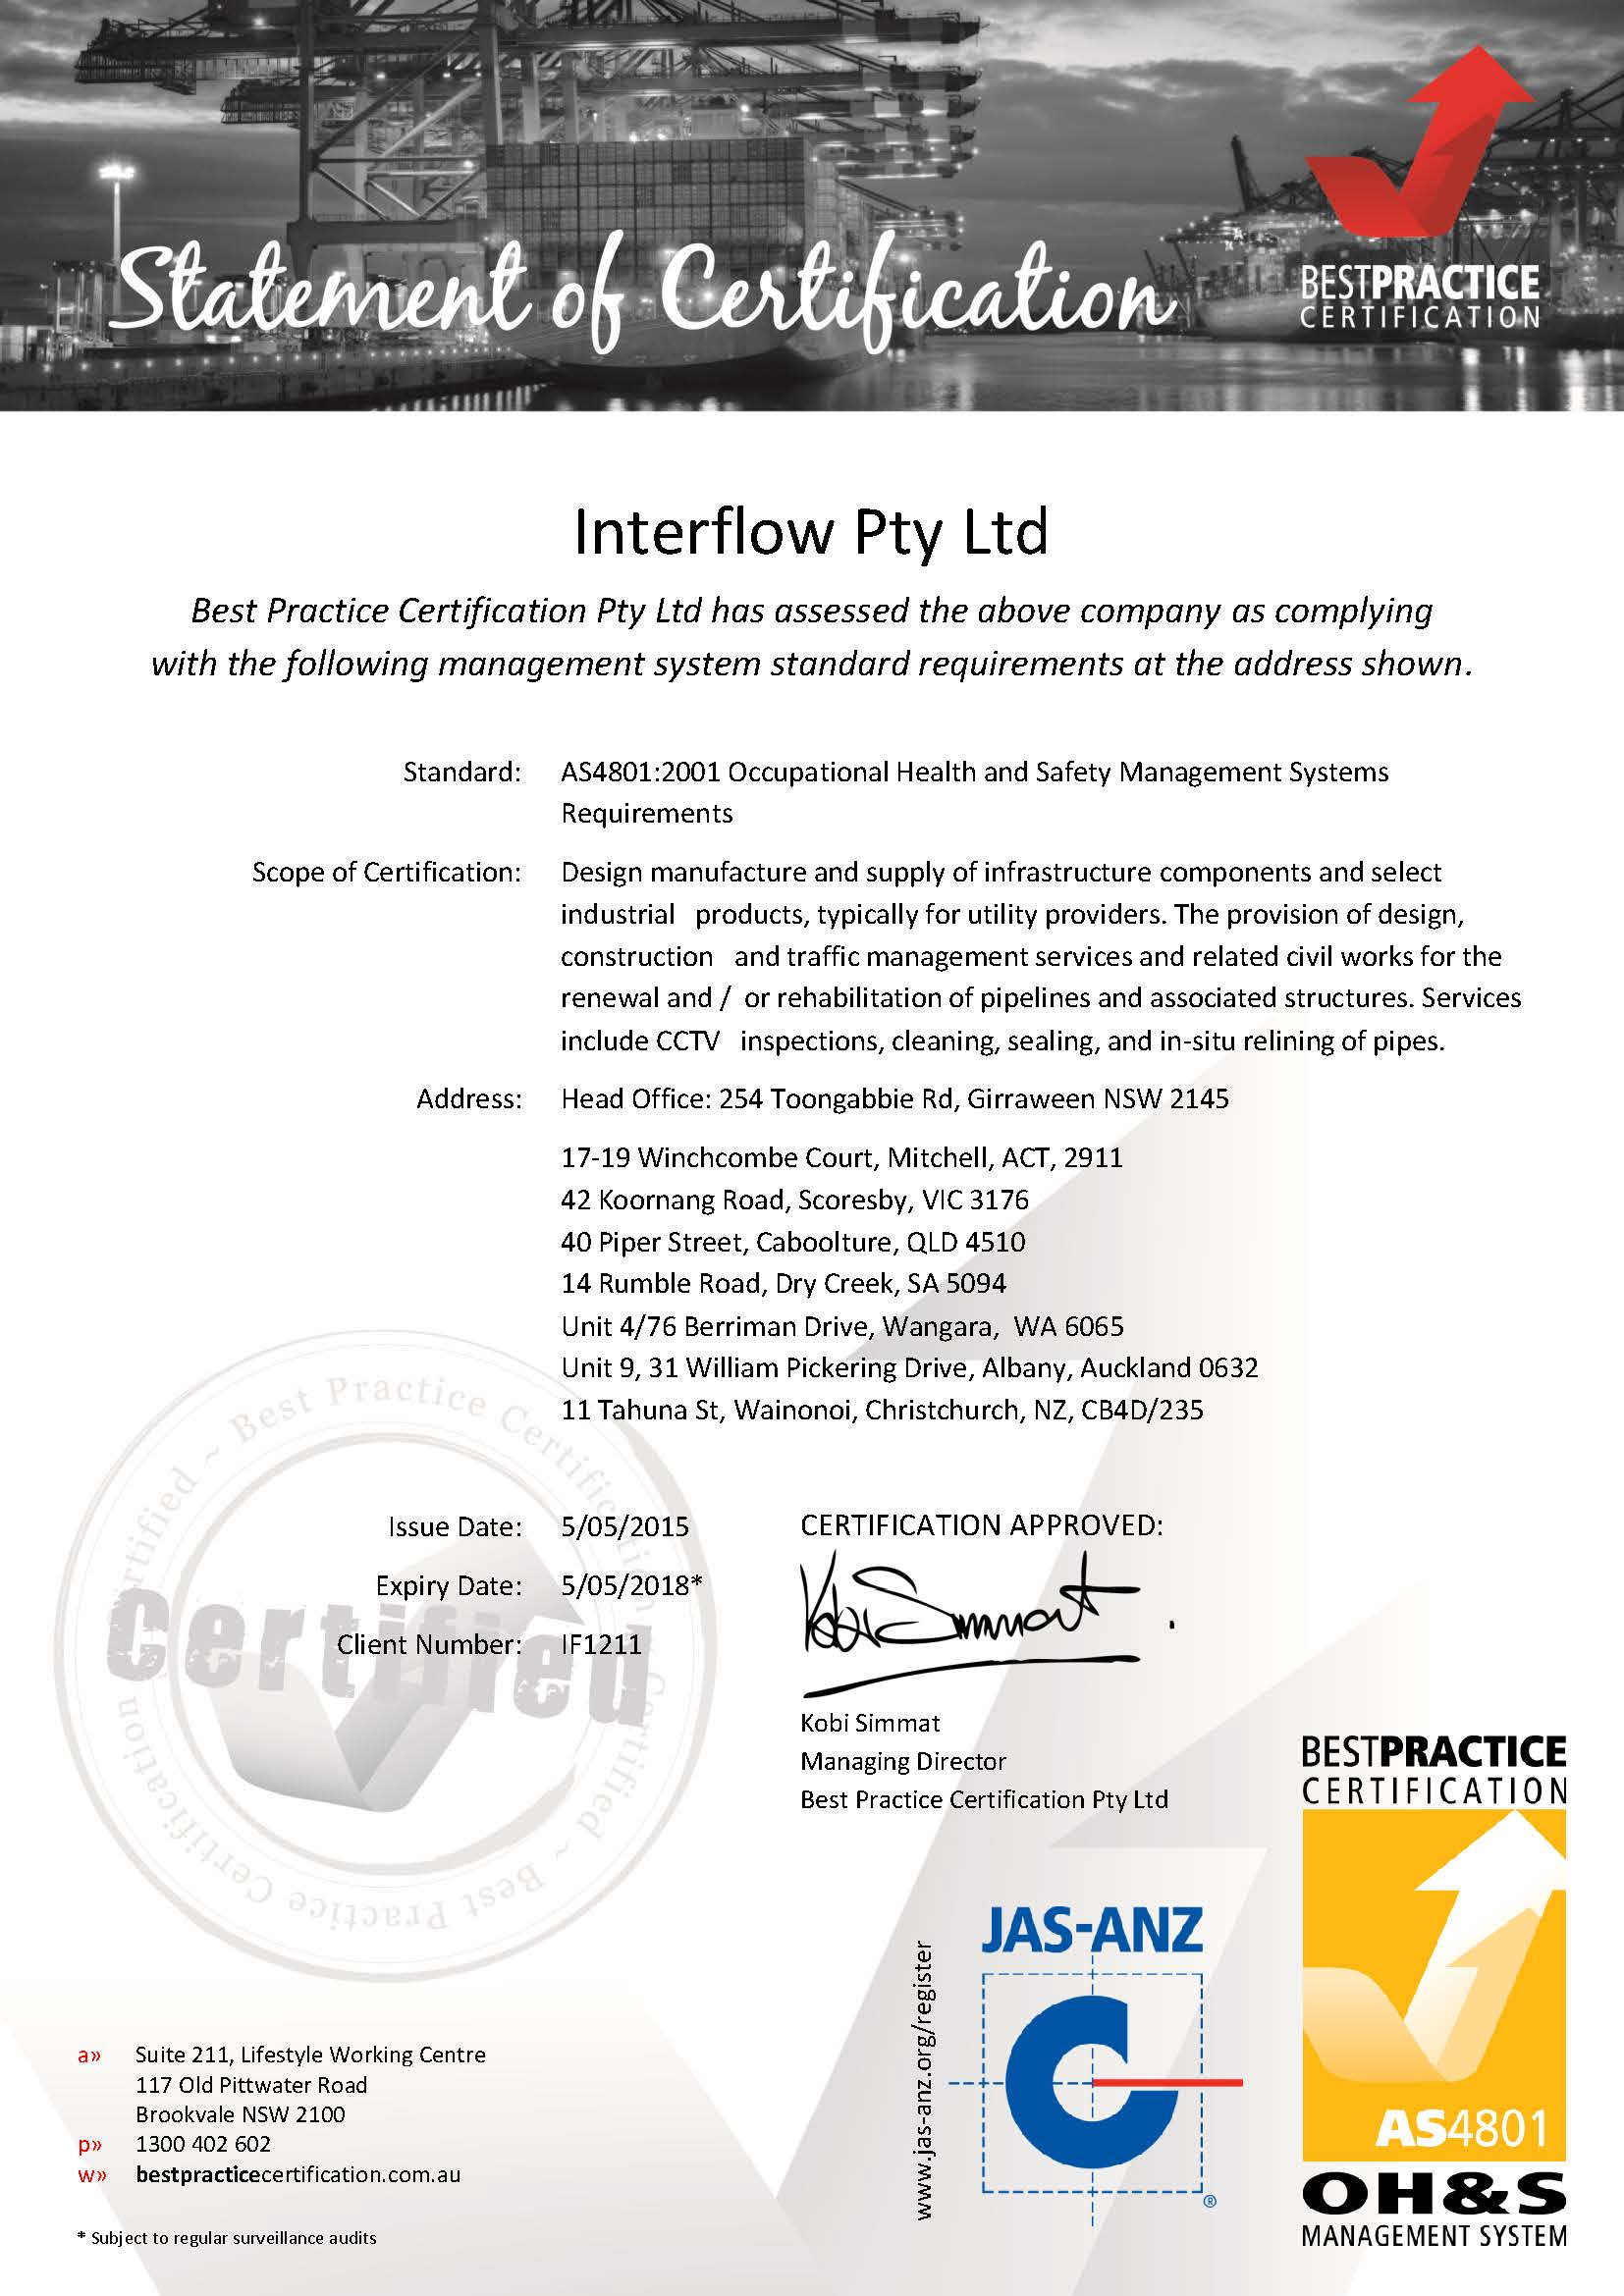 BPC-Interflow-AS4801Cert-20150505